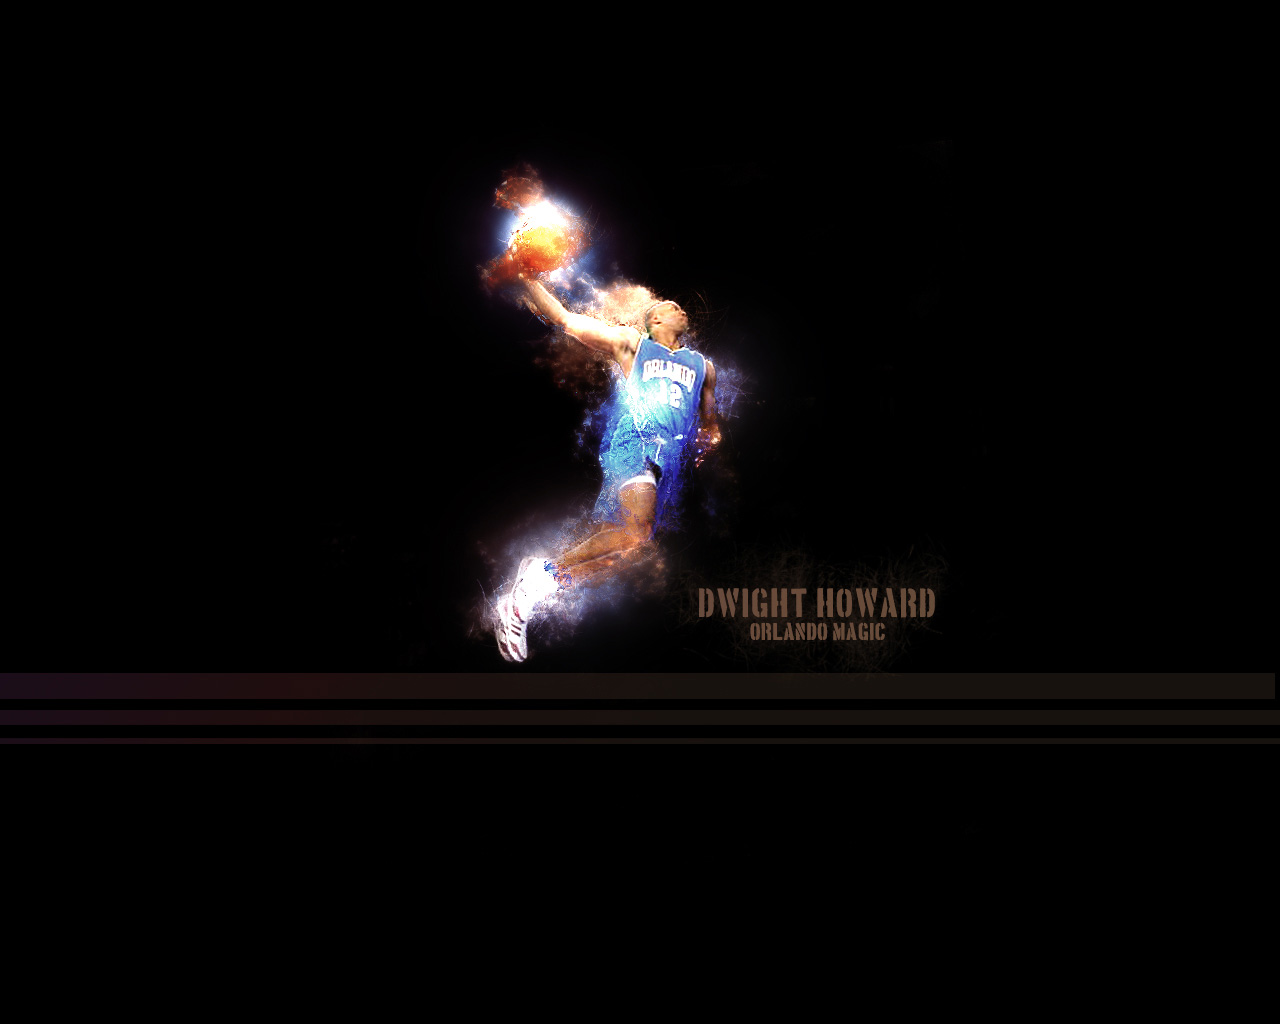 Lebron James Dunks Wallpaper